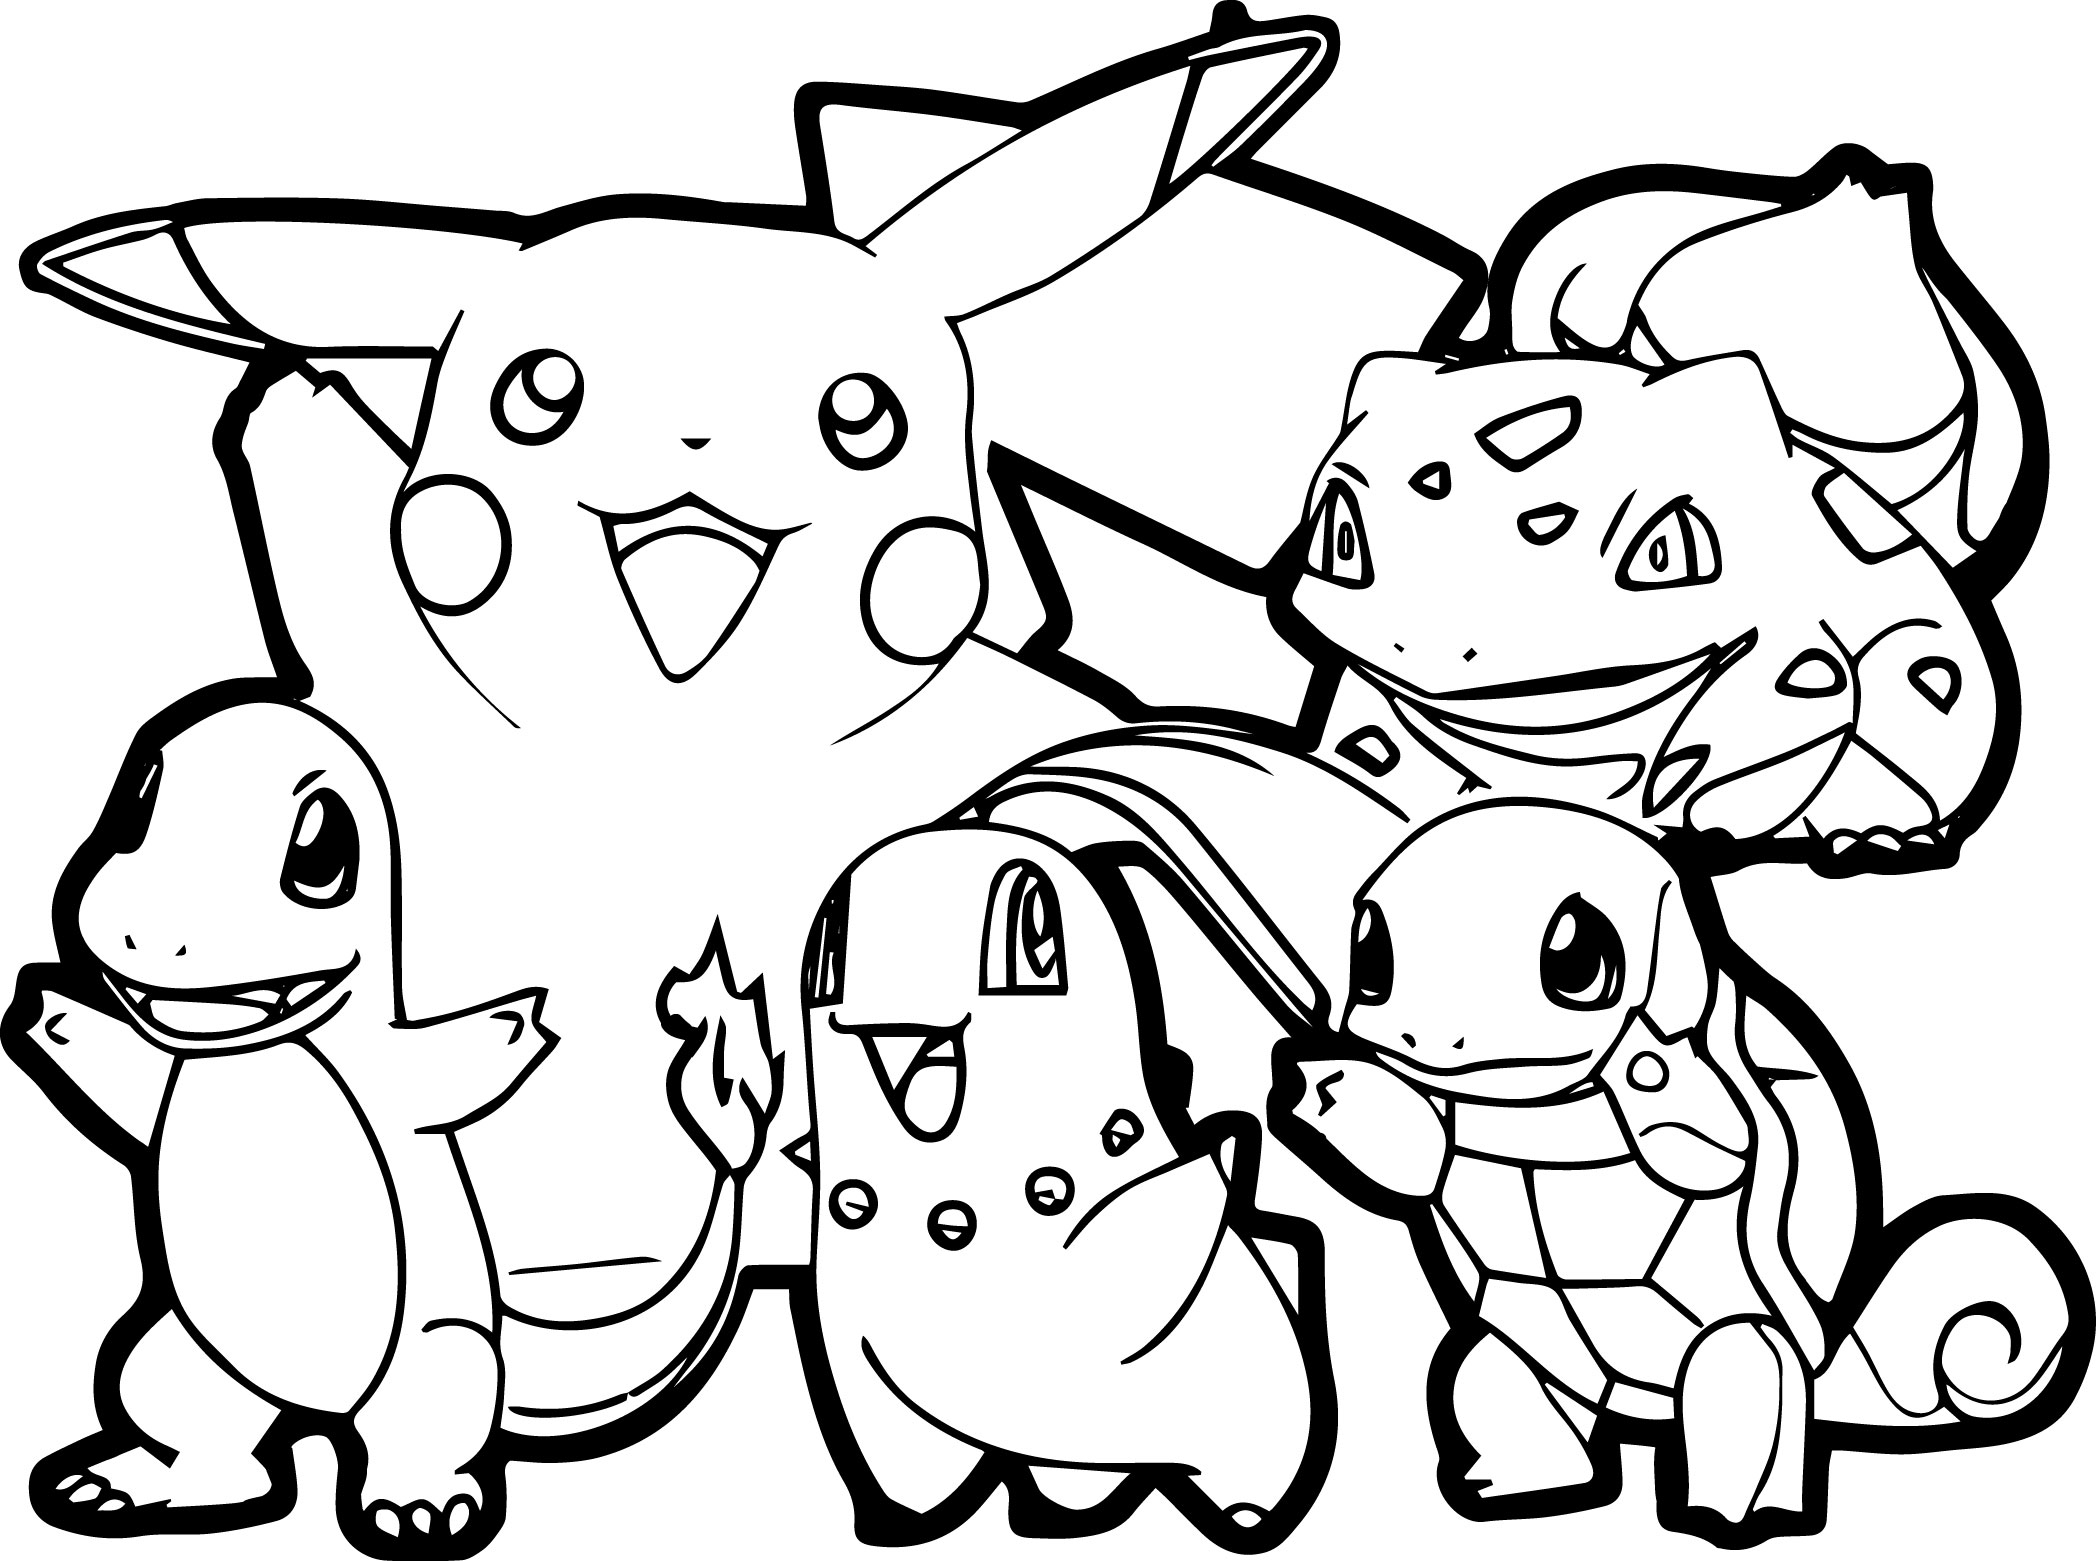 2096x1561 Modest Free Pokemon Coloring Pages Black And White New Printable